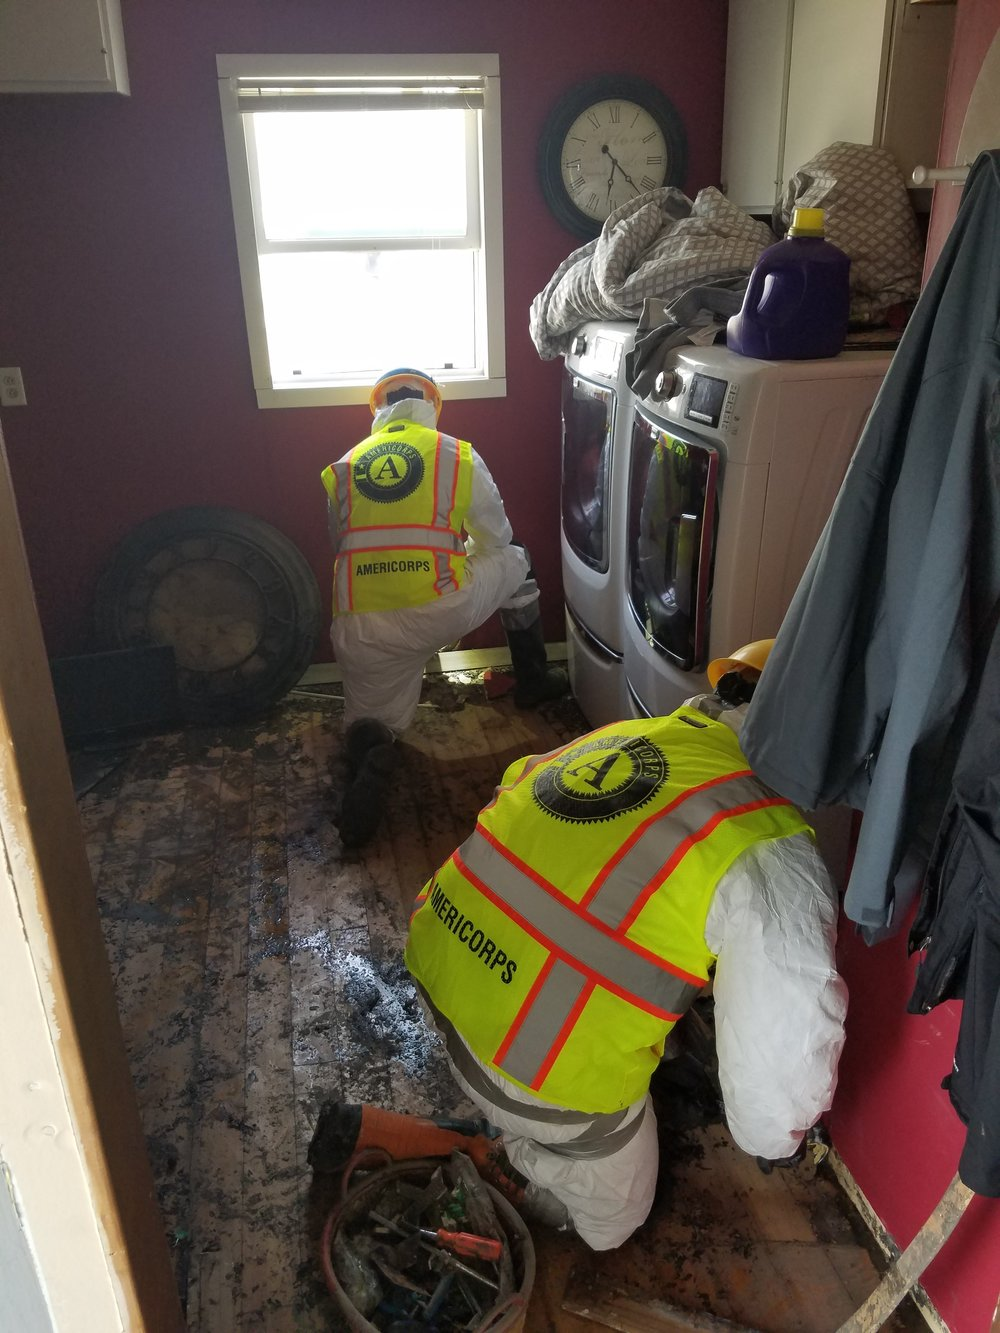 In April 2019, AmeriCorps members mitigated flooding damage in homes by providing services such as mold suppression and mucking/gutting.